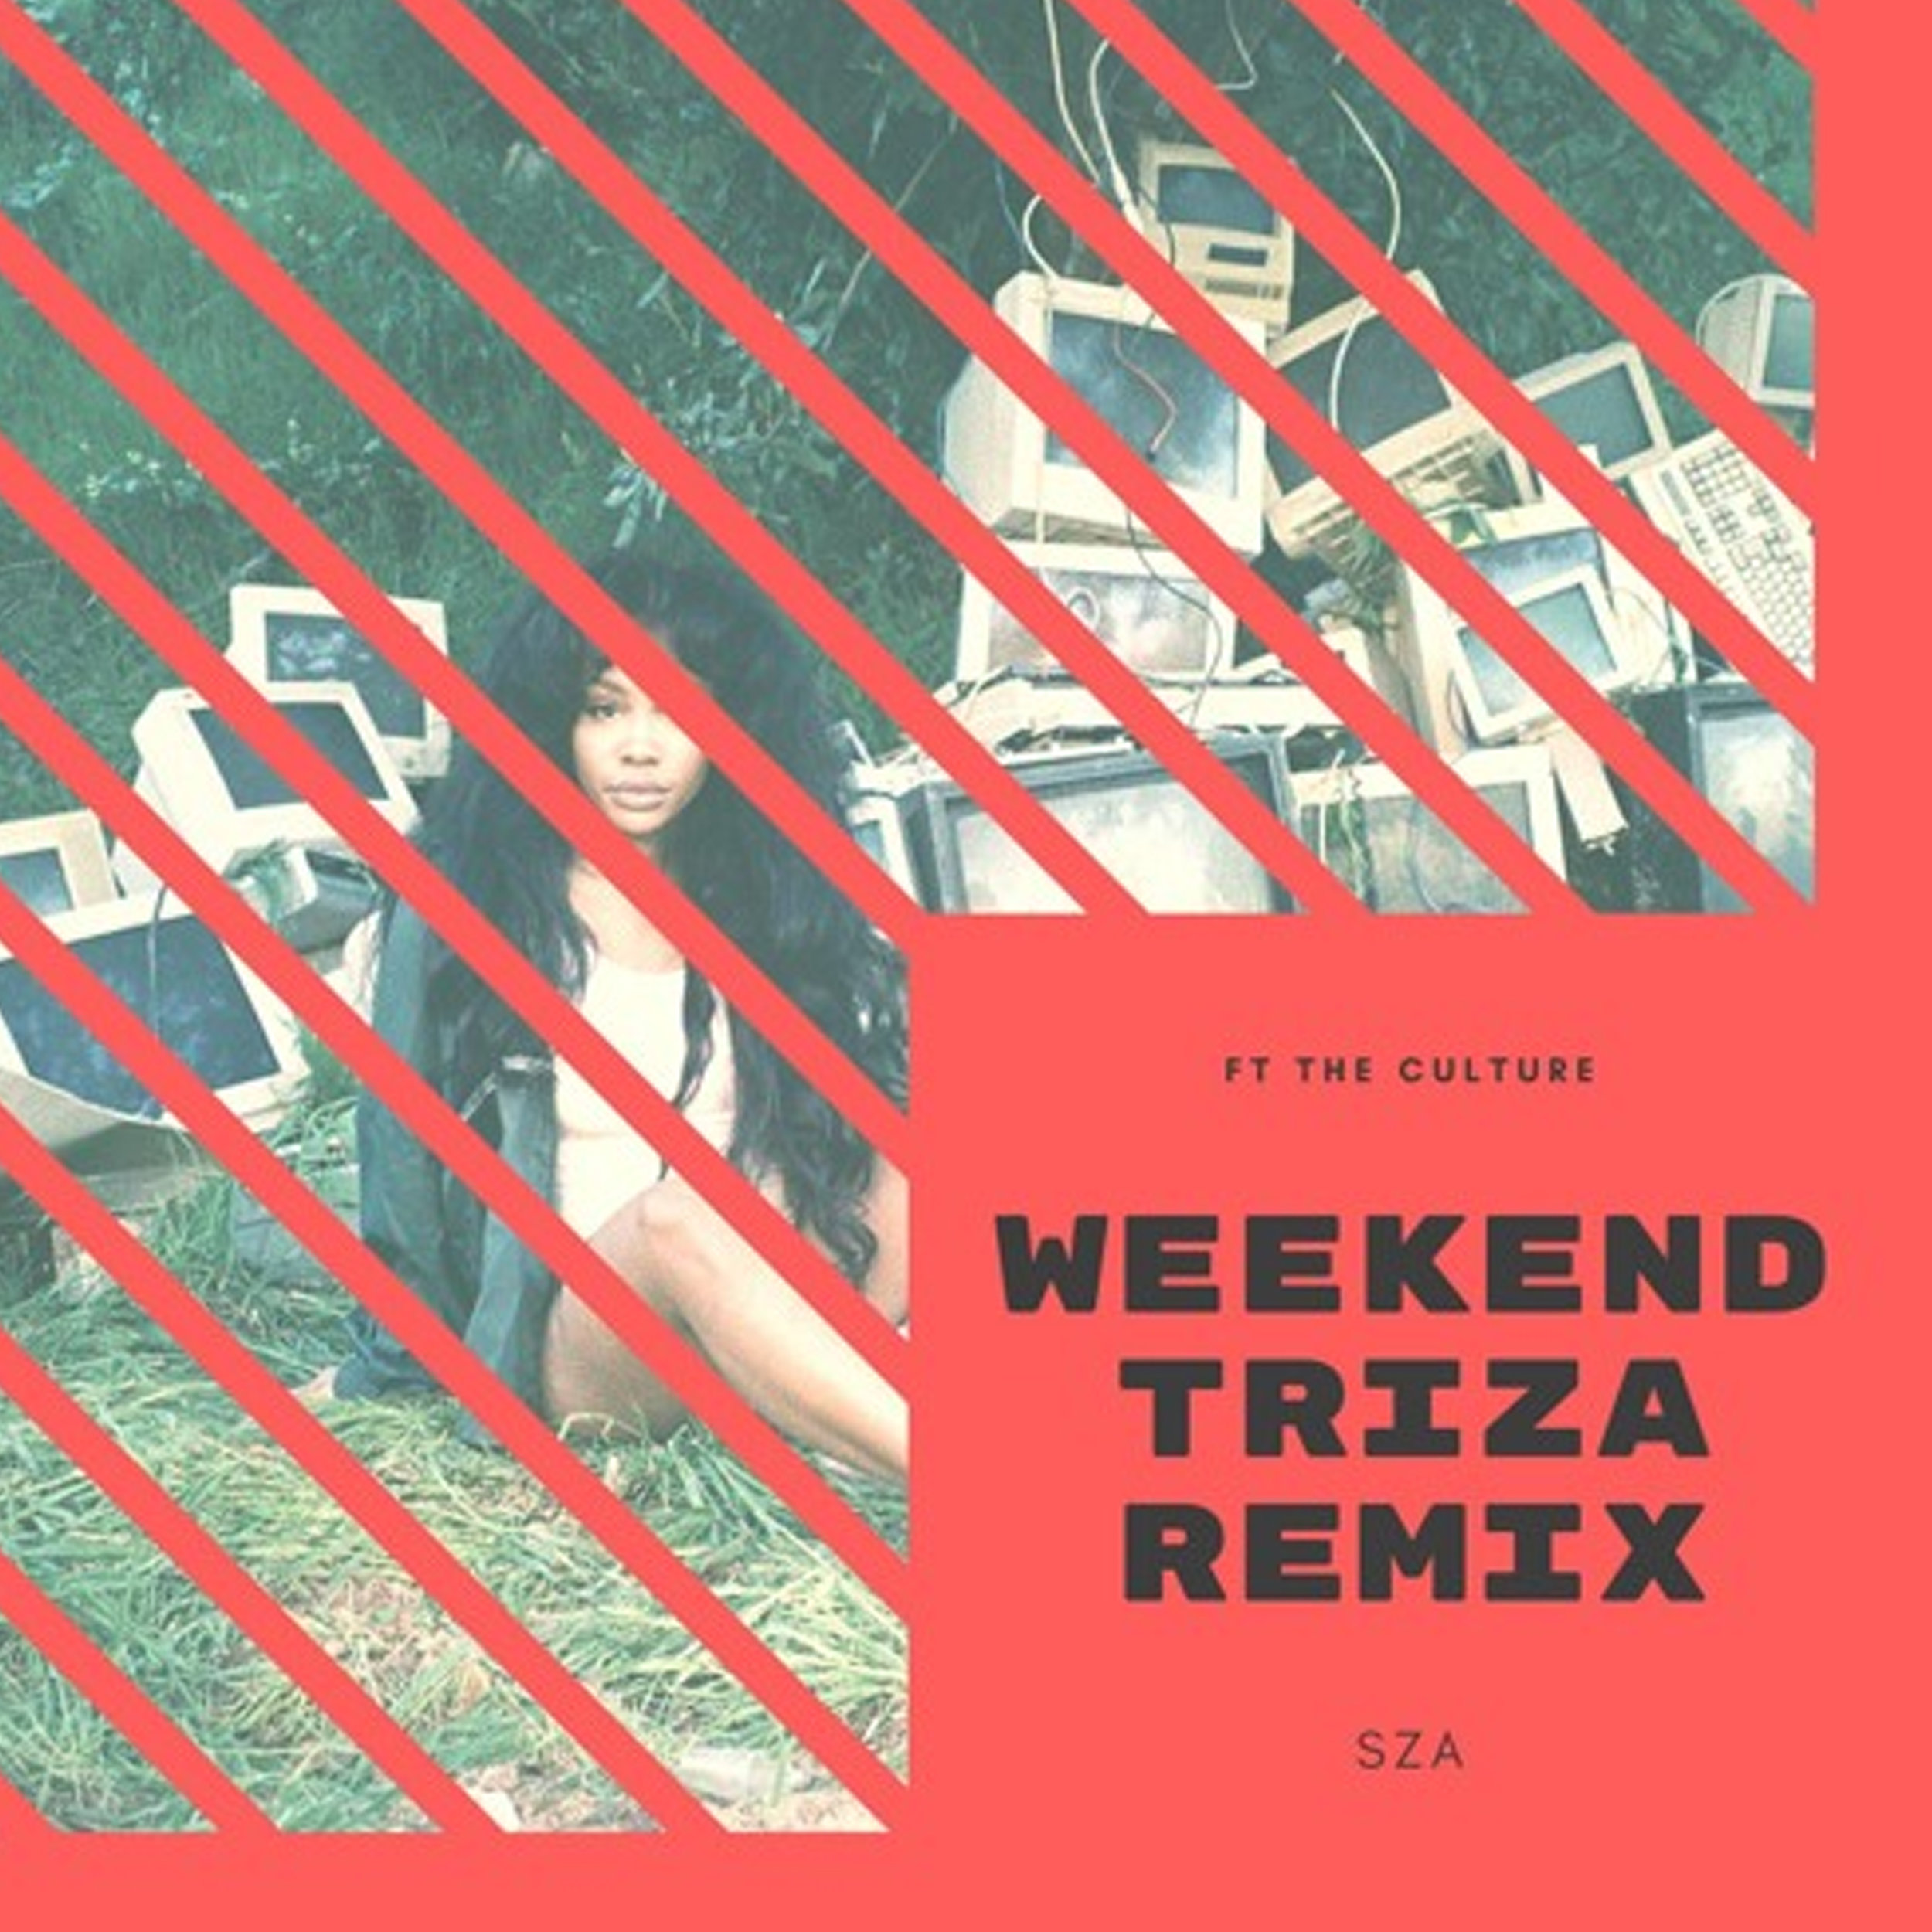 SZA - WEEKEND TRIZA REMIX FT THE CULTURE